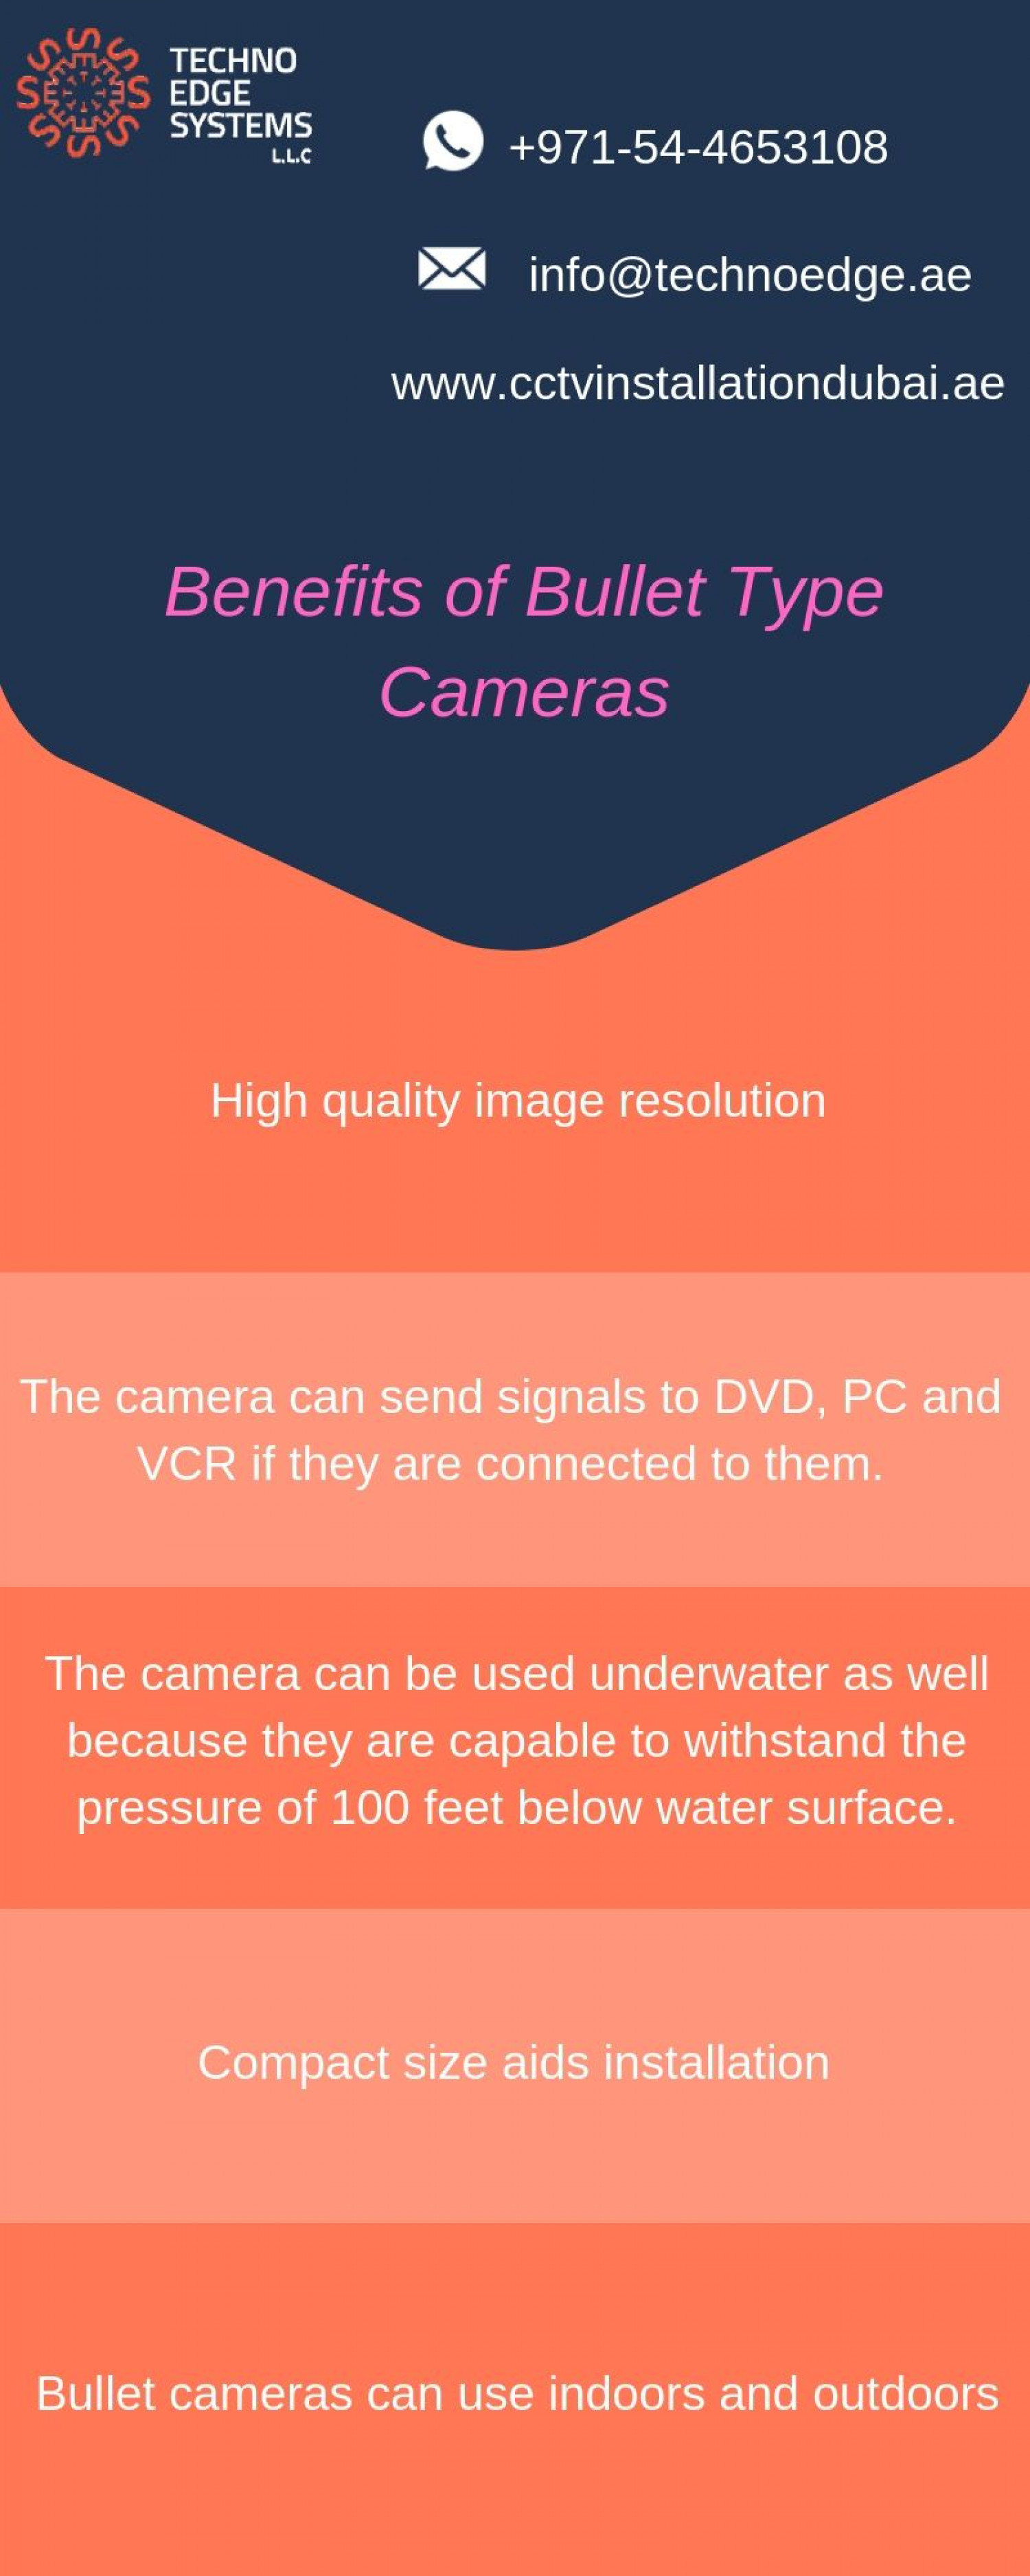 Benefits of Bullet Type Cameras Infographic